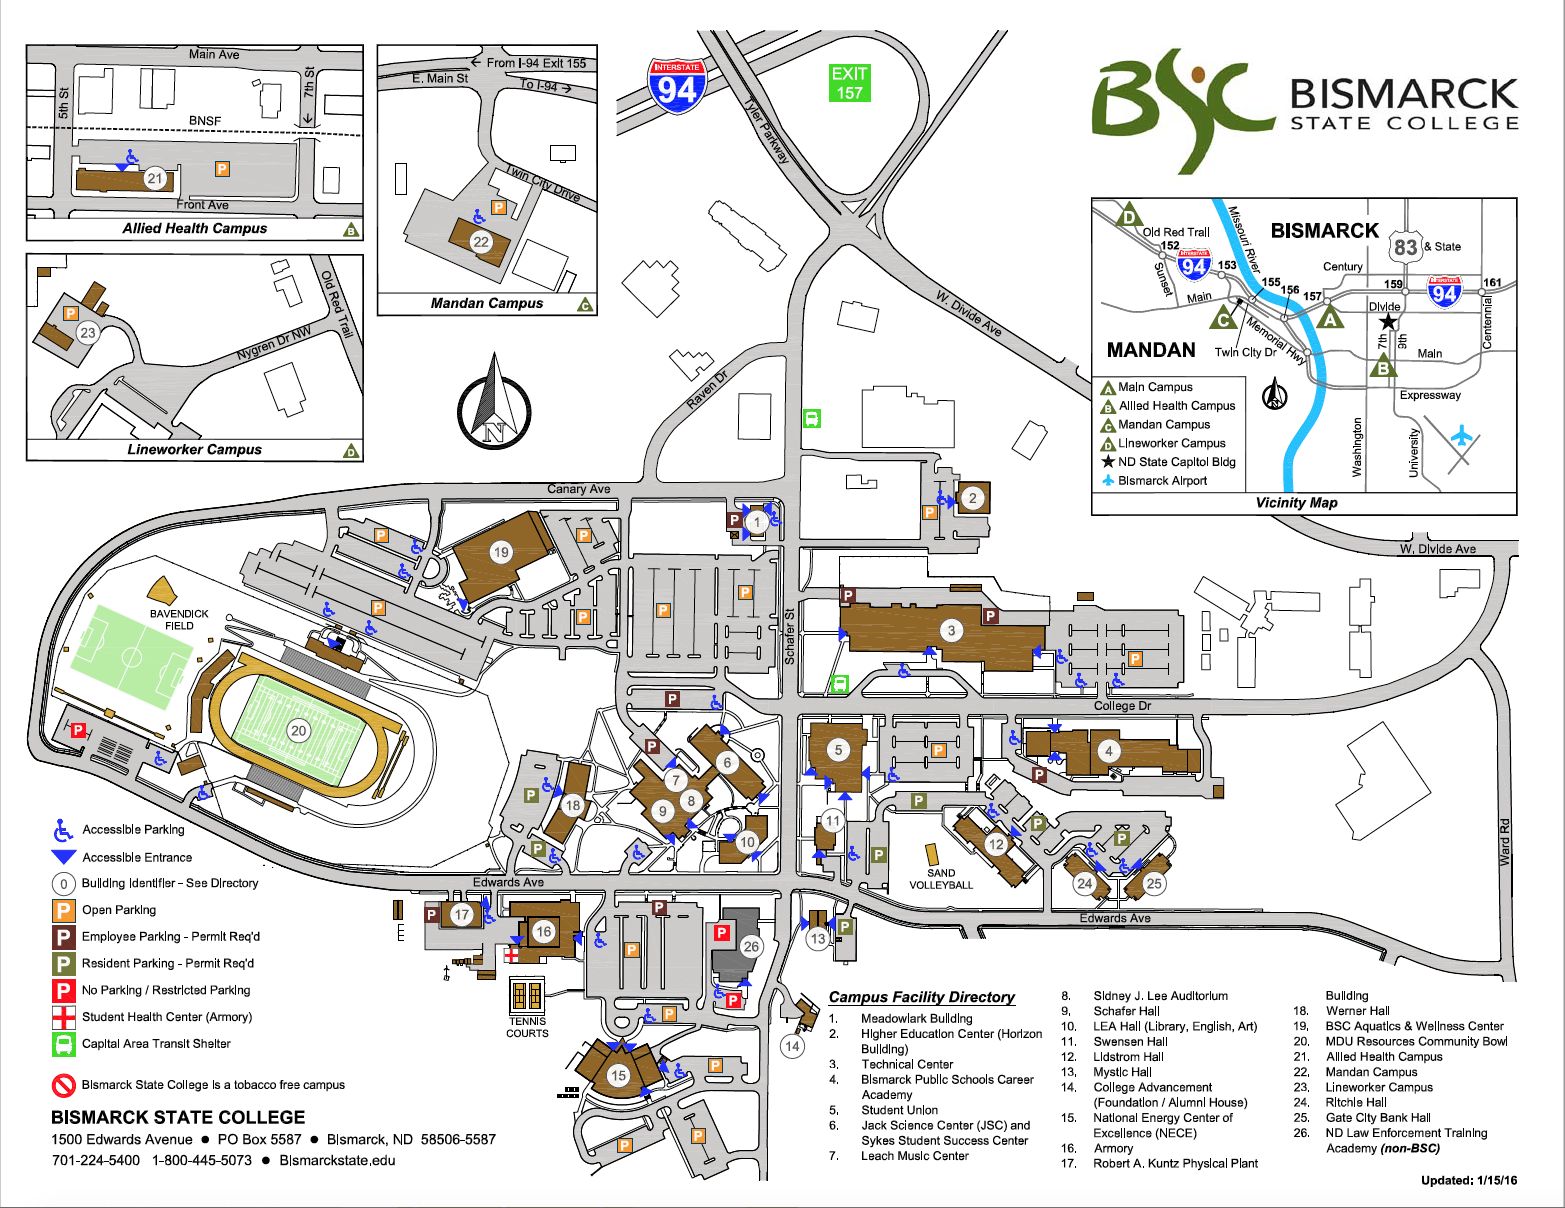 Polk State College Campus Map.Bismarck State College Campus Map Androidplay Store